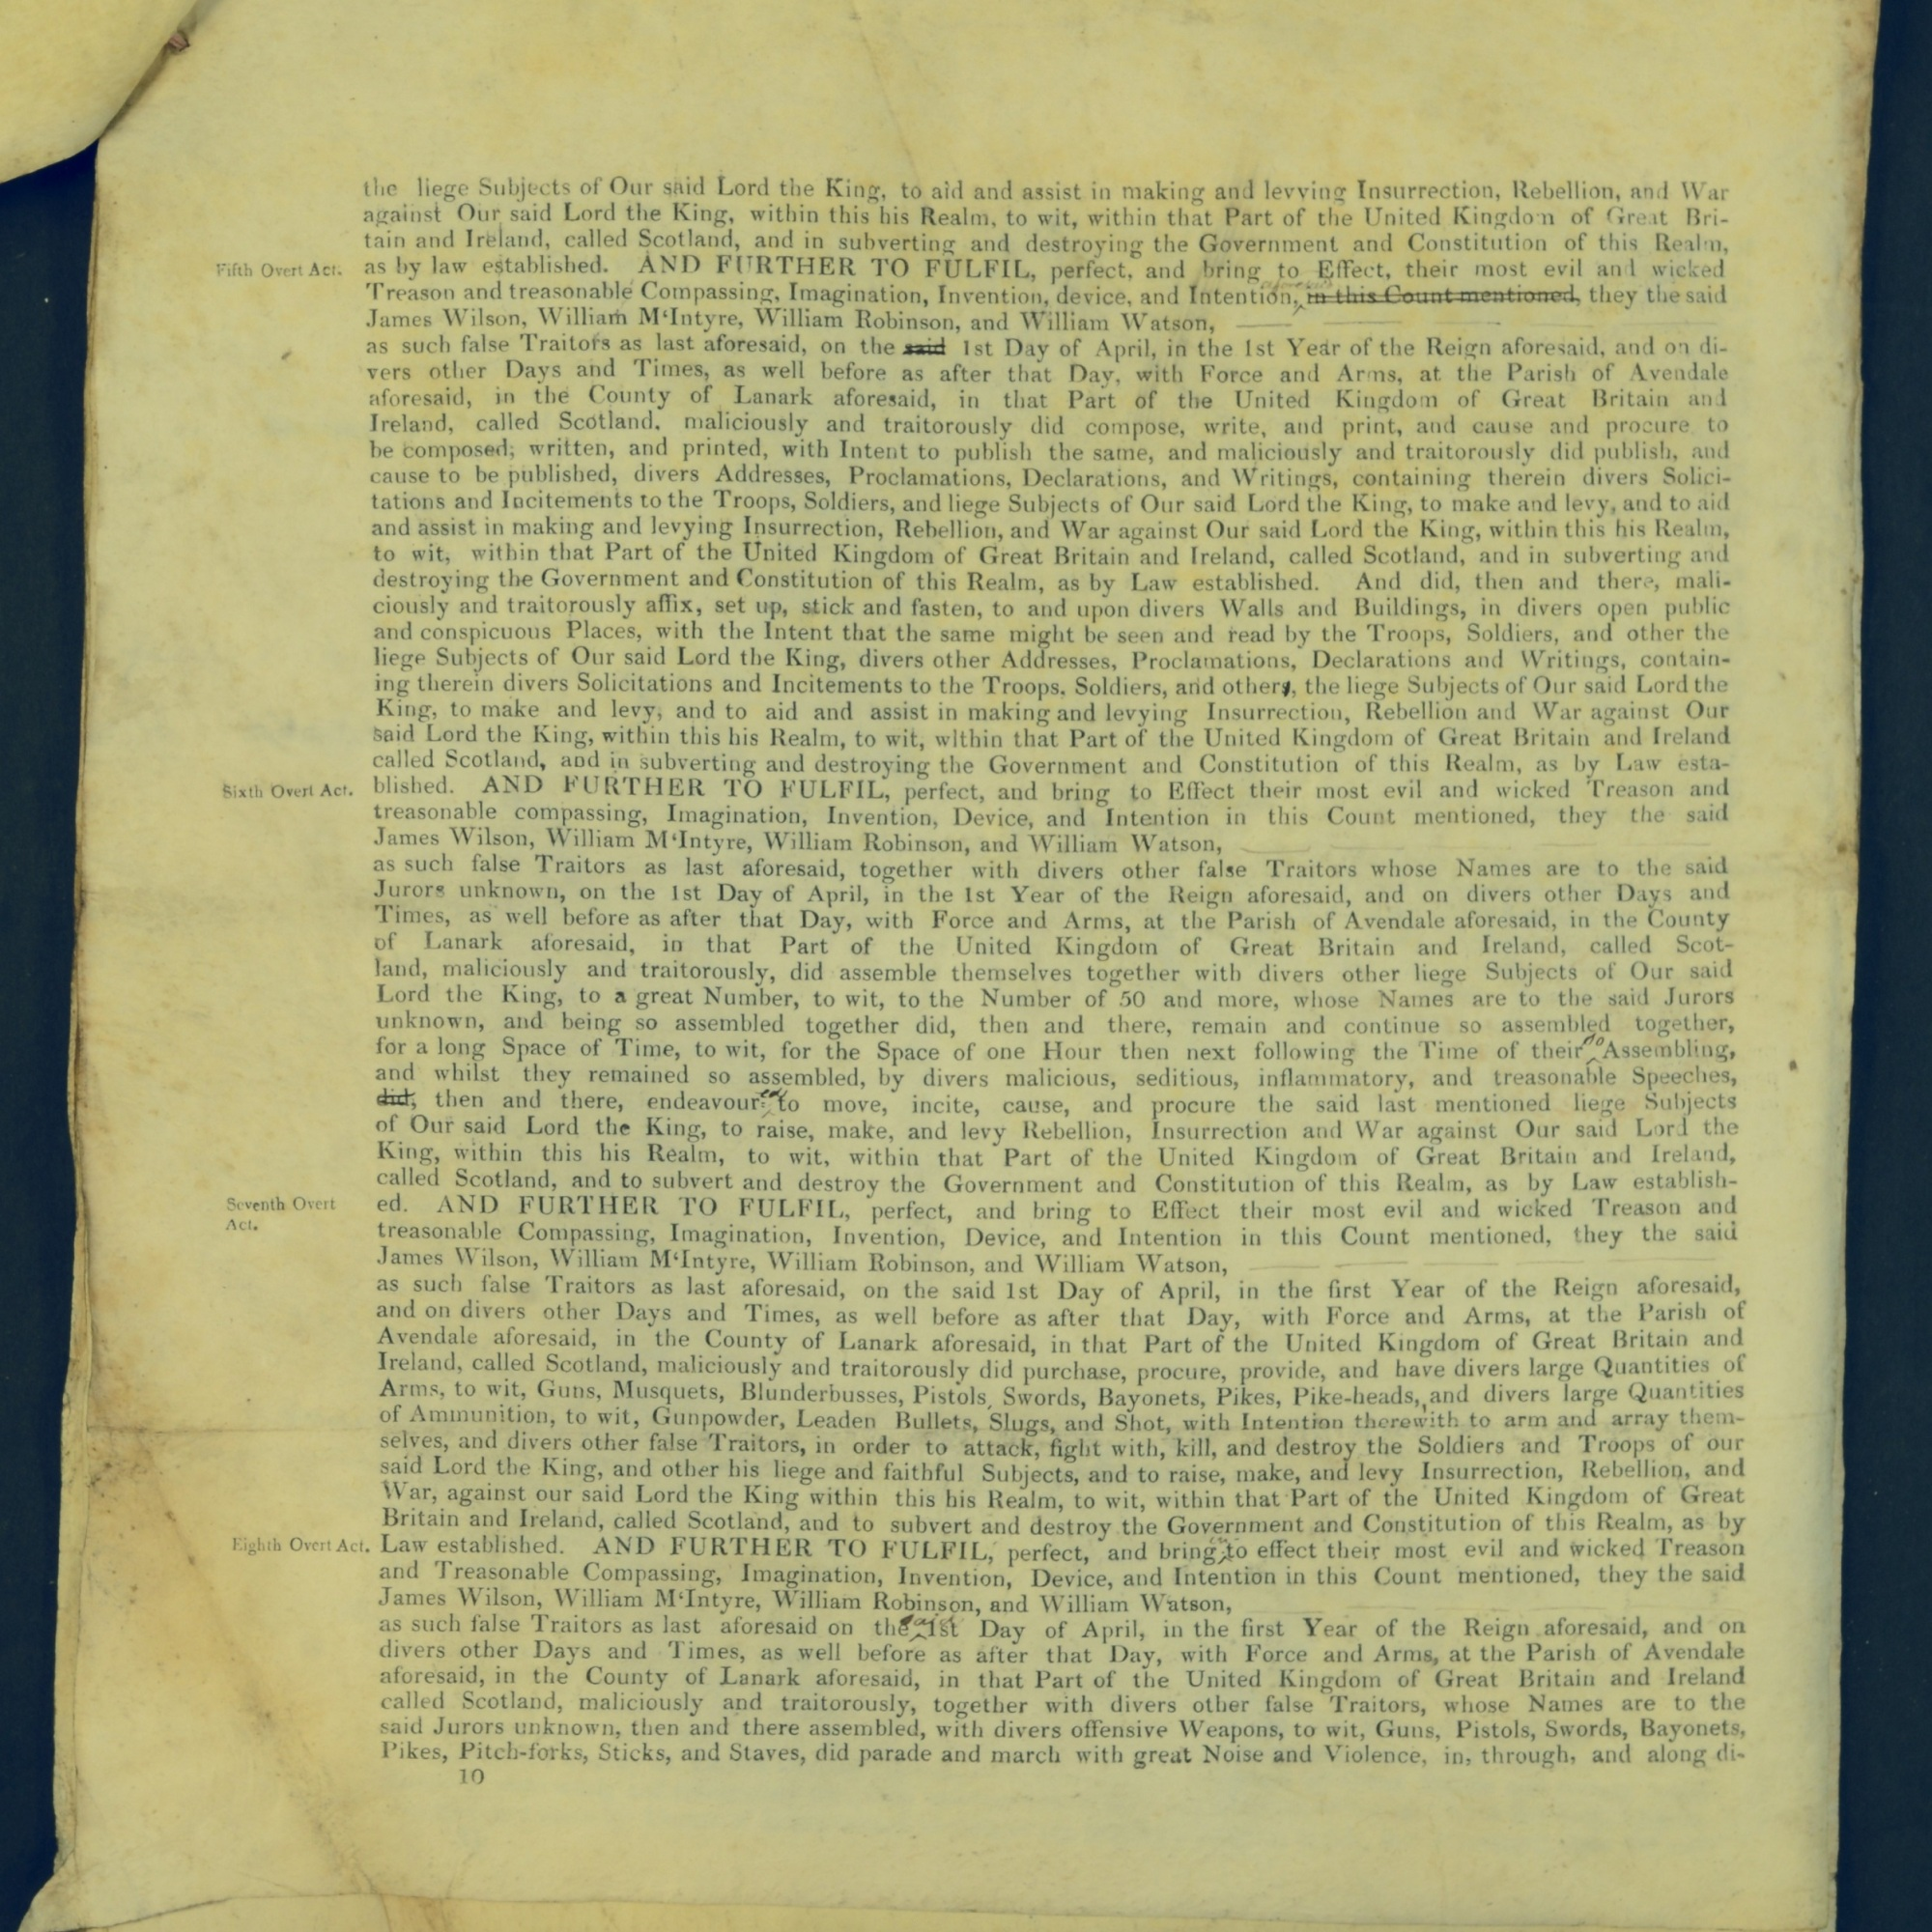 Treason Trials for the County of Lanark, the Strathaven Case. True bills found against four men, James Wilson, William McIntyre, William Robinson and William Watson. National Records of Scotland, Crown copyright, JC21/3/4 p10